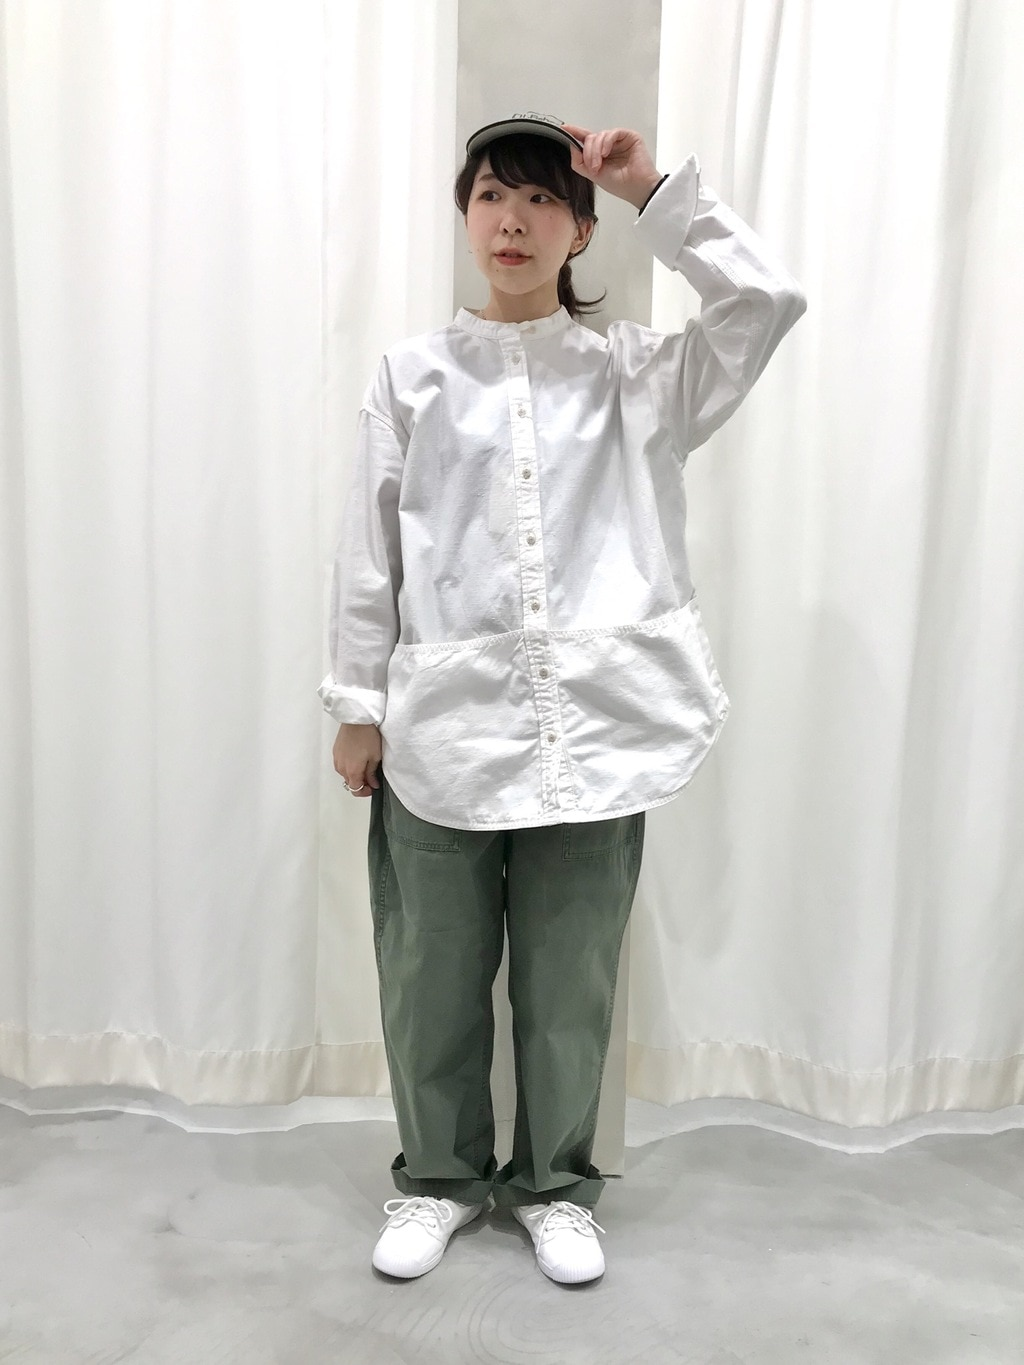 AMB SHOP PAR ICI CHILD WOMAN,PAR ICI ルミネ横浜 身長:154cm 2020.04.11